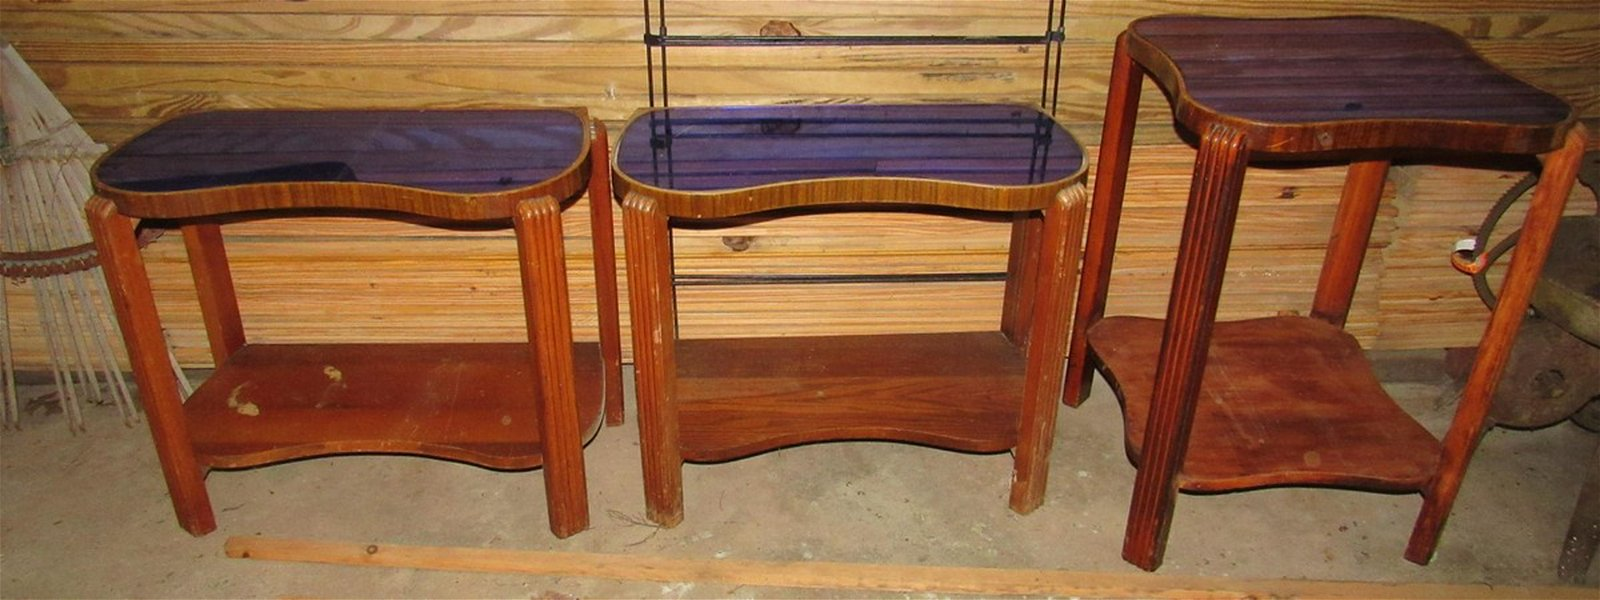 Vintage Art Deco Tables with Glass Tops